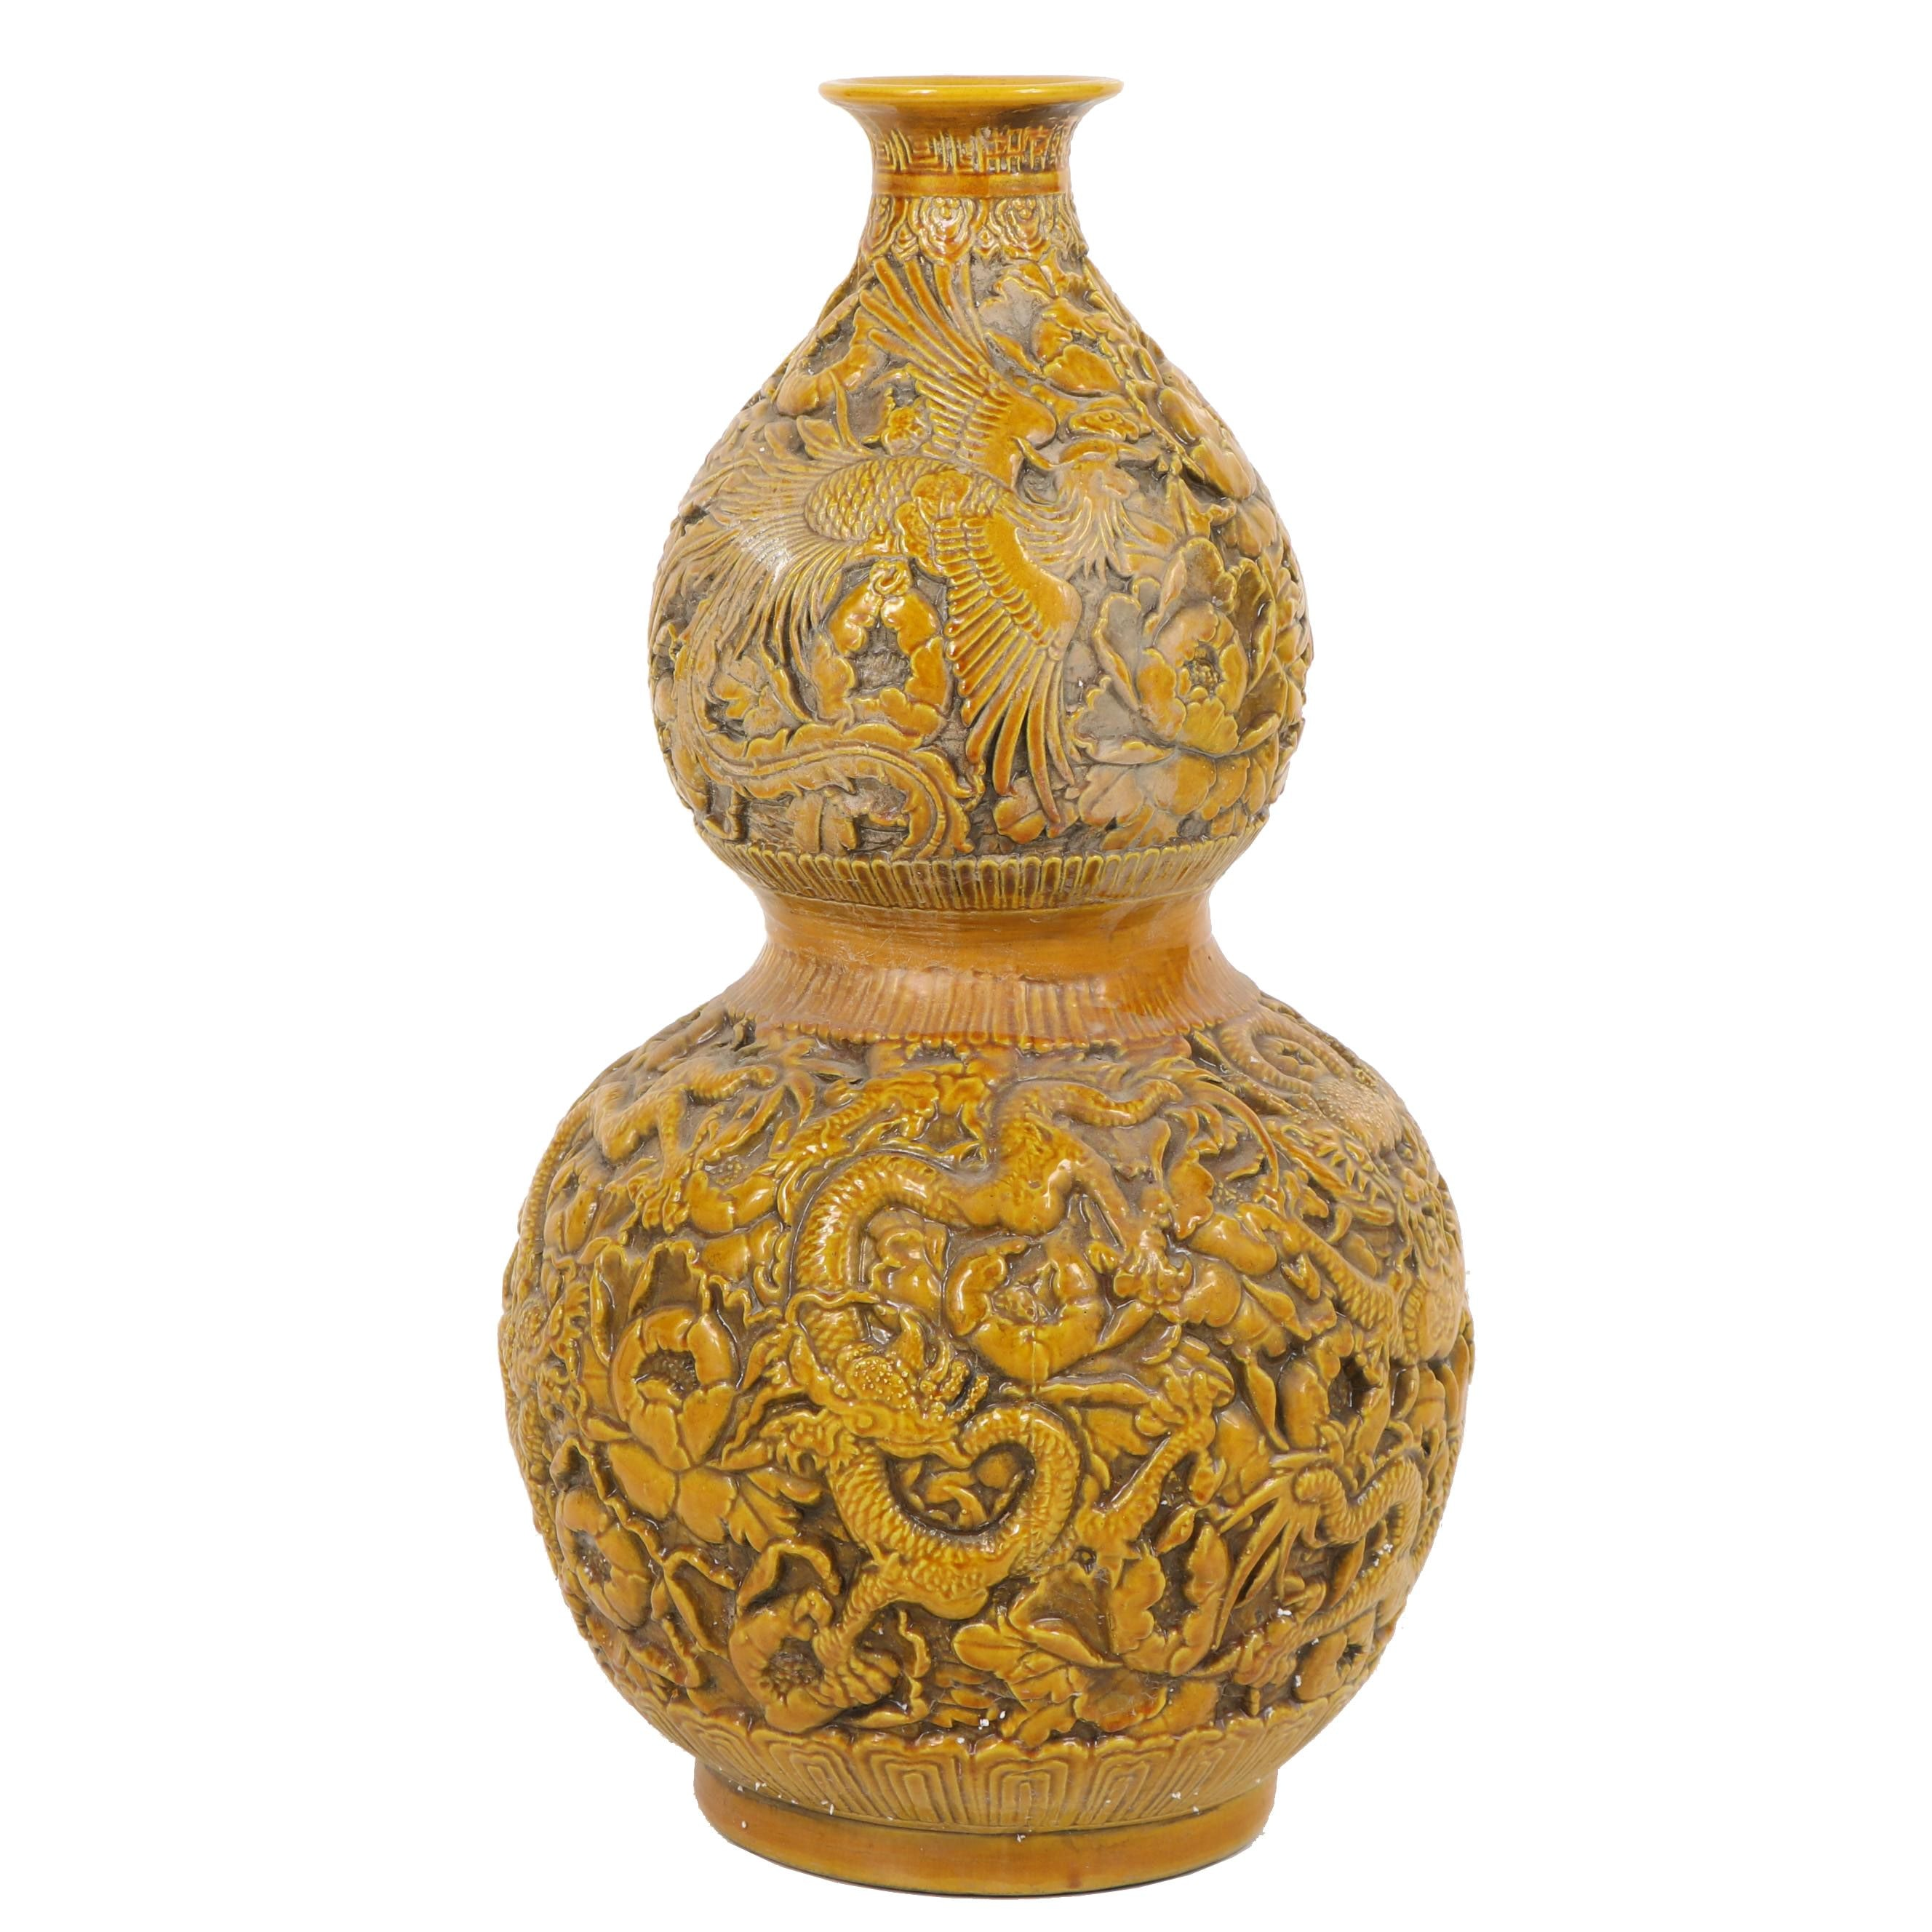 Chinese Ceramic Gourd Floor Vase with Dragon and Phoenix Relief Designs